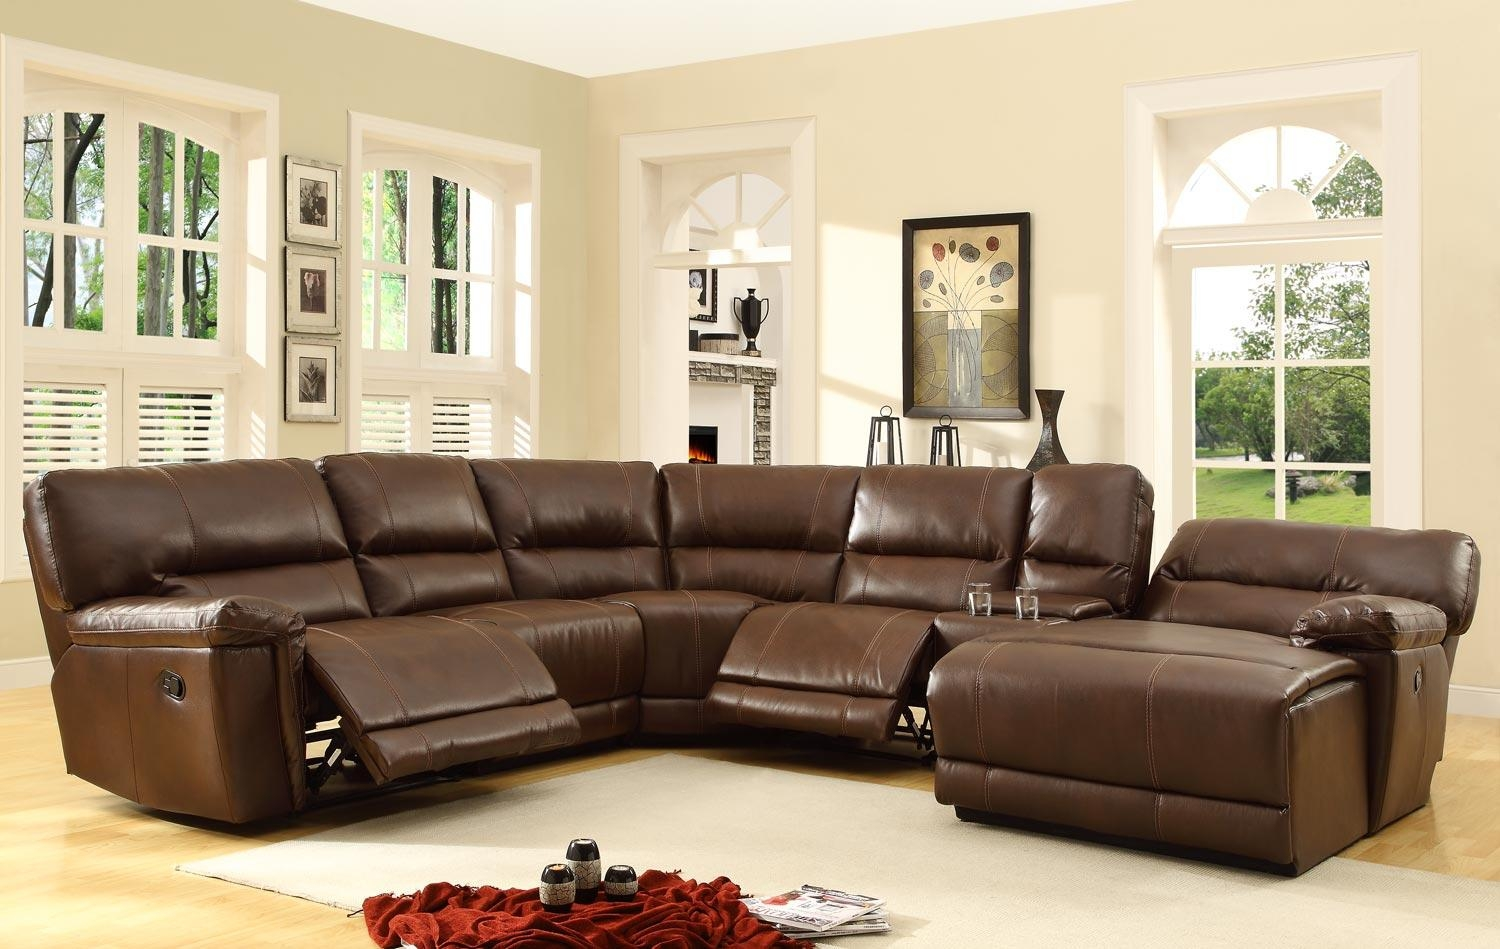 Homelegance Blythe Sectional Sofa Set – Brown – Bonded Leather Pertaining To Homelegance Sofas (View 11 of 20)